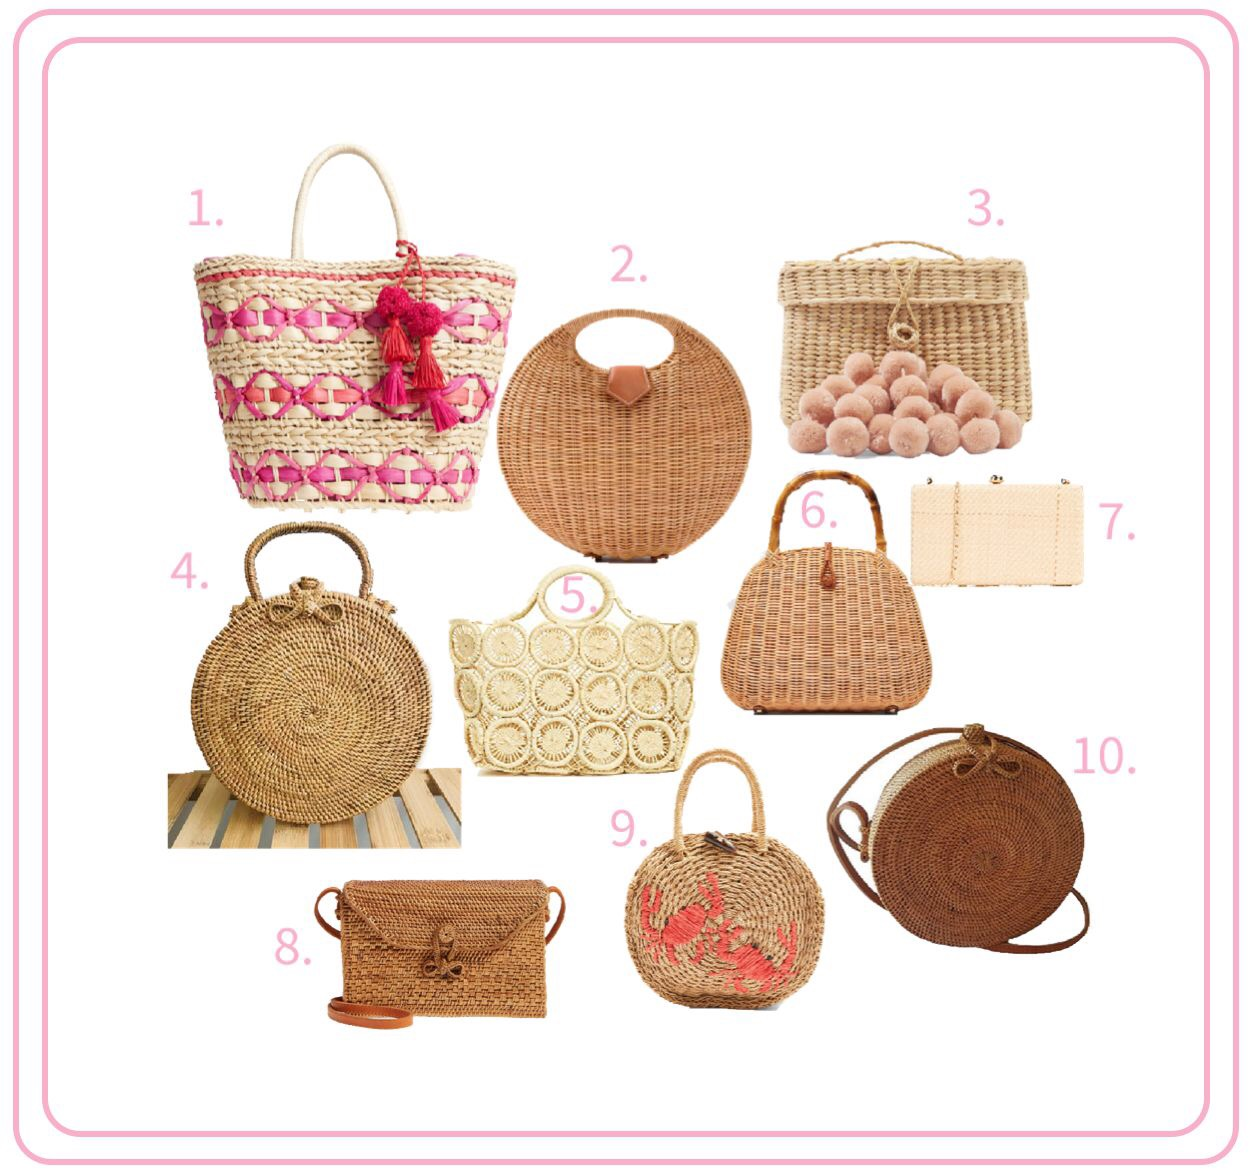 The Best Basket Bags for Spring